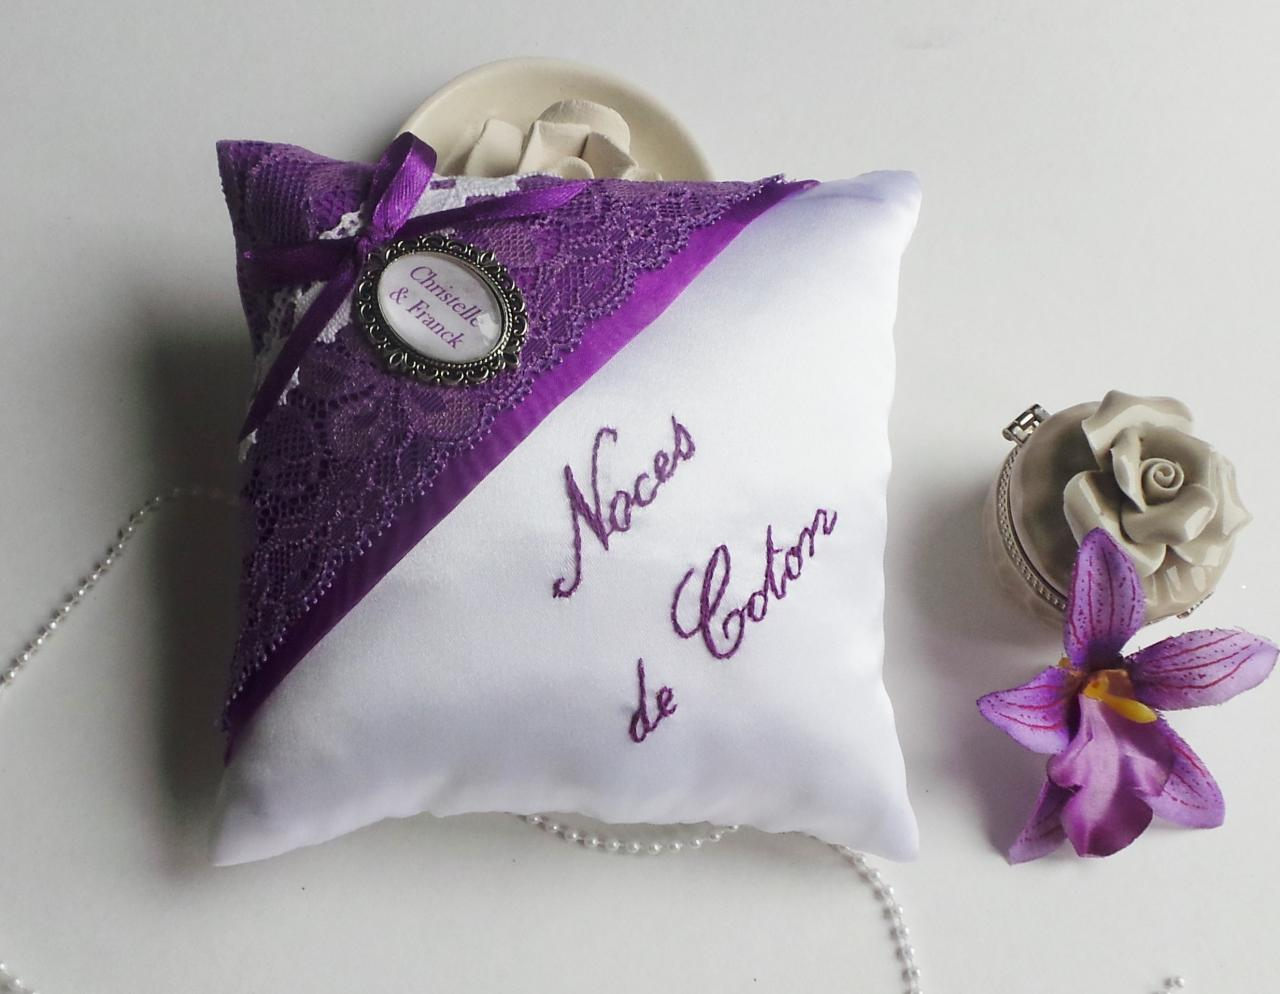 coussin alliances violet prune noces de coton